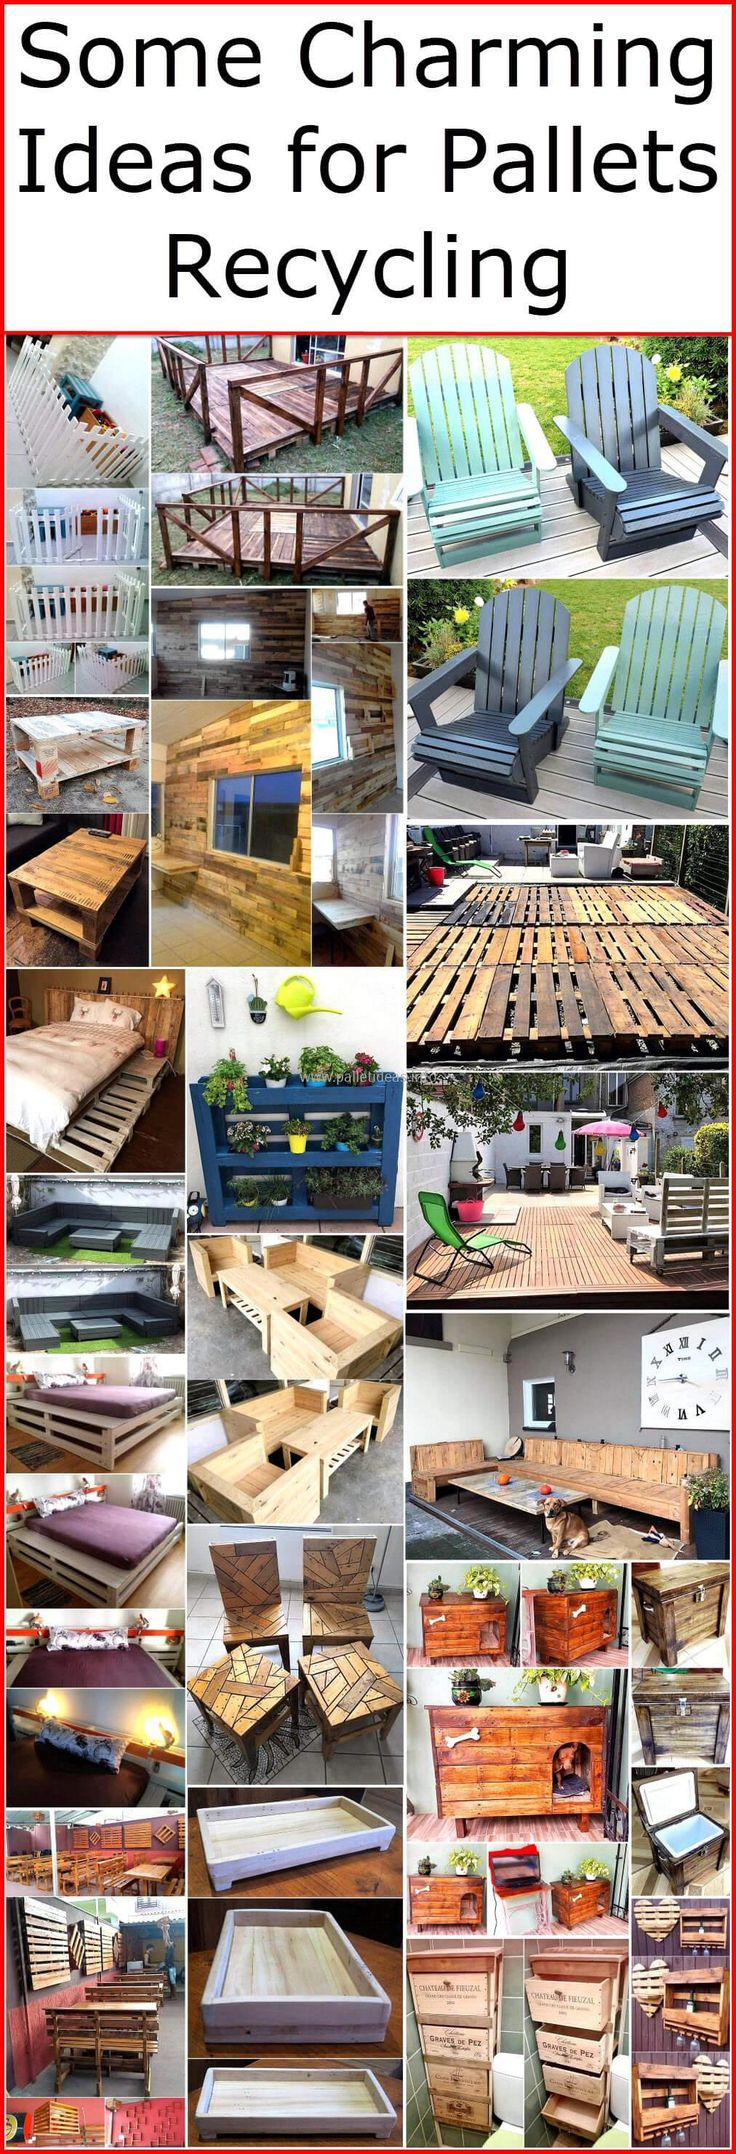 Such charming ideas and plans will provide you ease of decorating your dream house in affordable style. These few charming ideas for pallets recycling will help you to refurbish your home with new, stylish wood pallet furniture. These pallets wood ideas will create a delightful and lovable environment at your home.